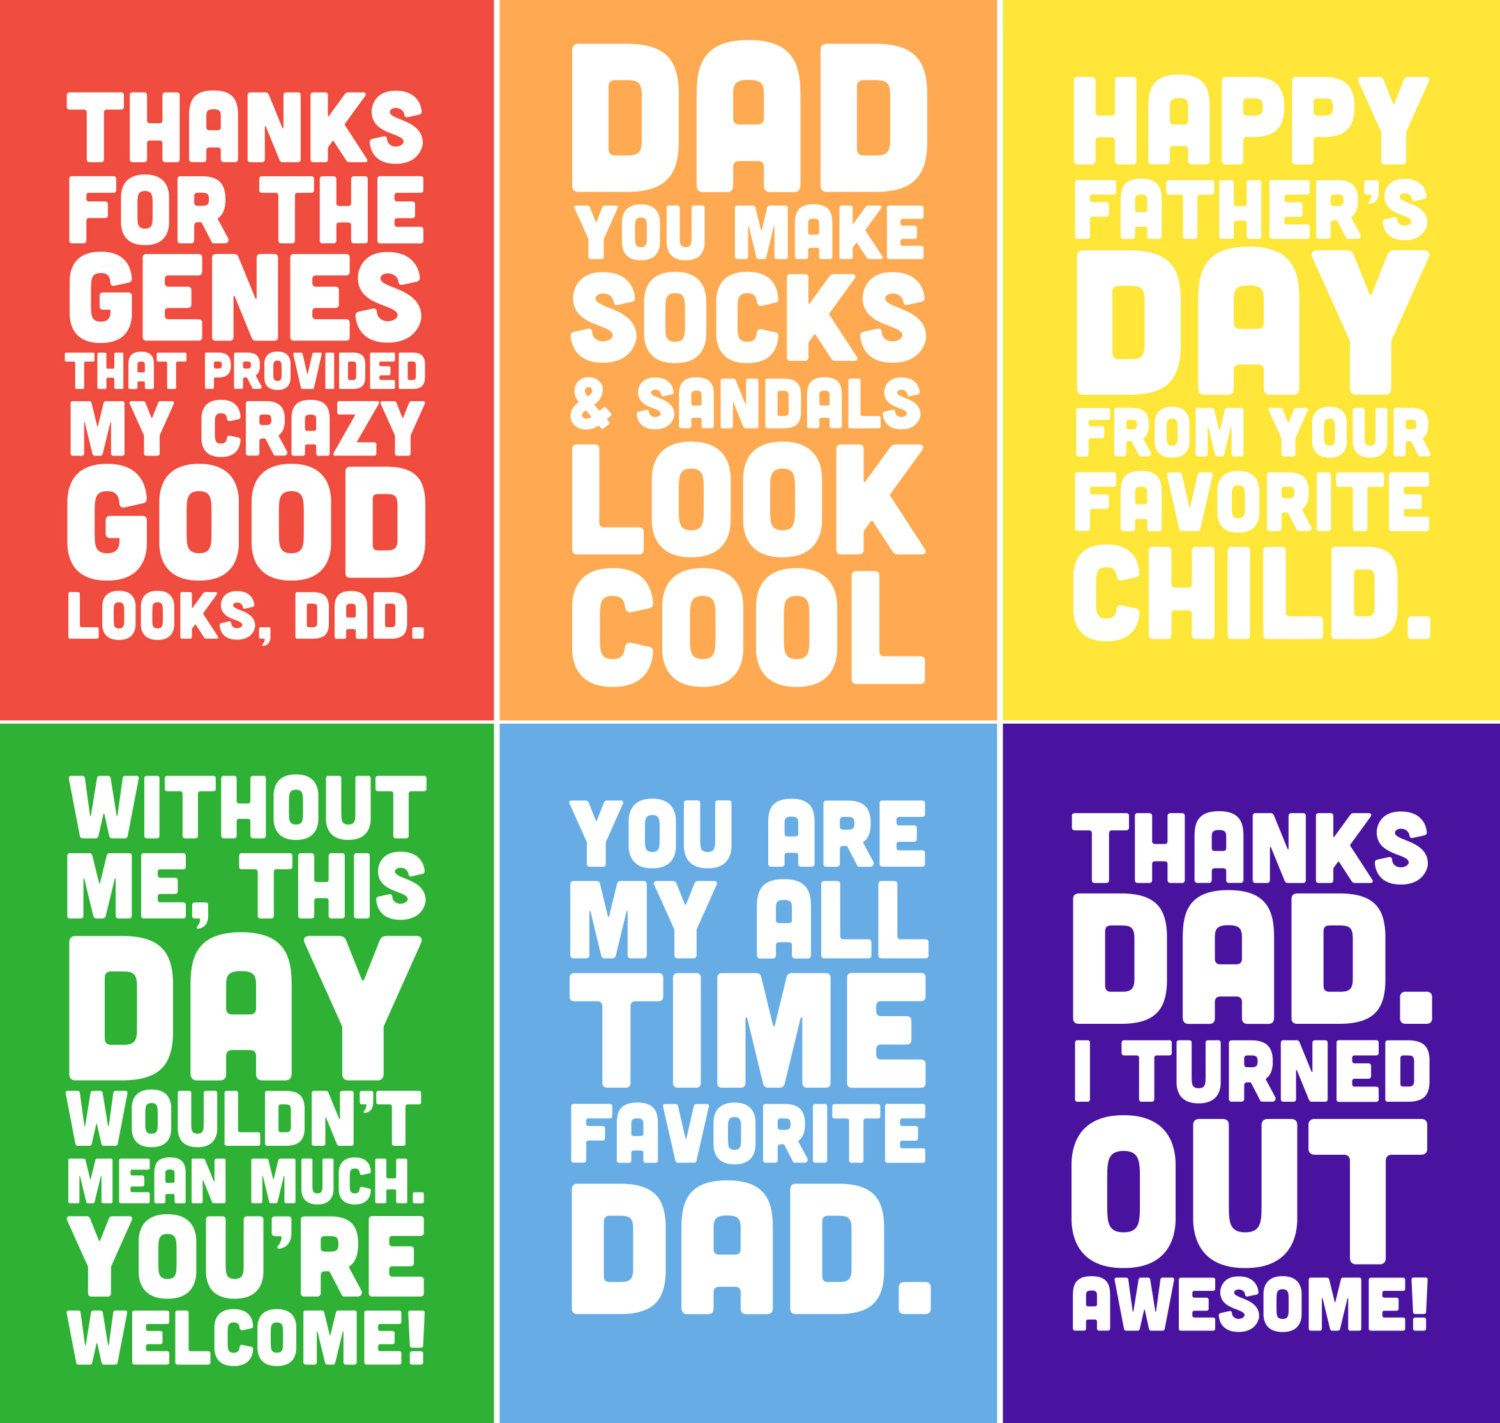 Funny Father S Day Printable Cards 5x7 Includes 6 By Alexazdesign 7 00 Fathers Day Quotes Father S Day Printable Father S Day Diy